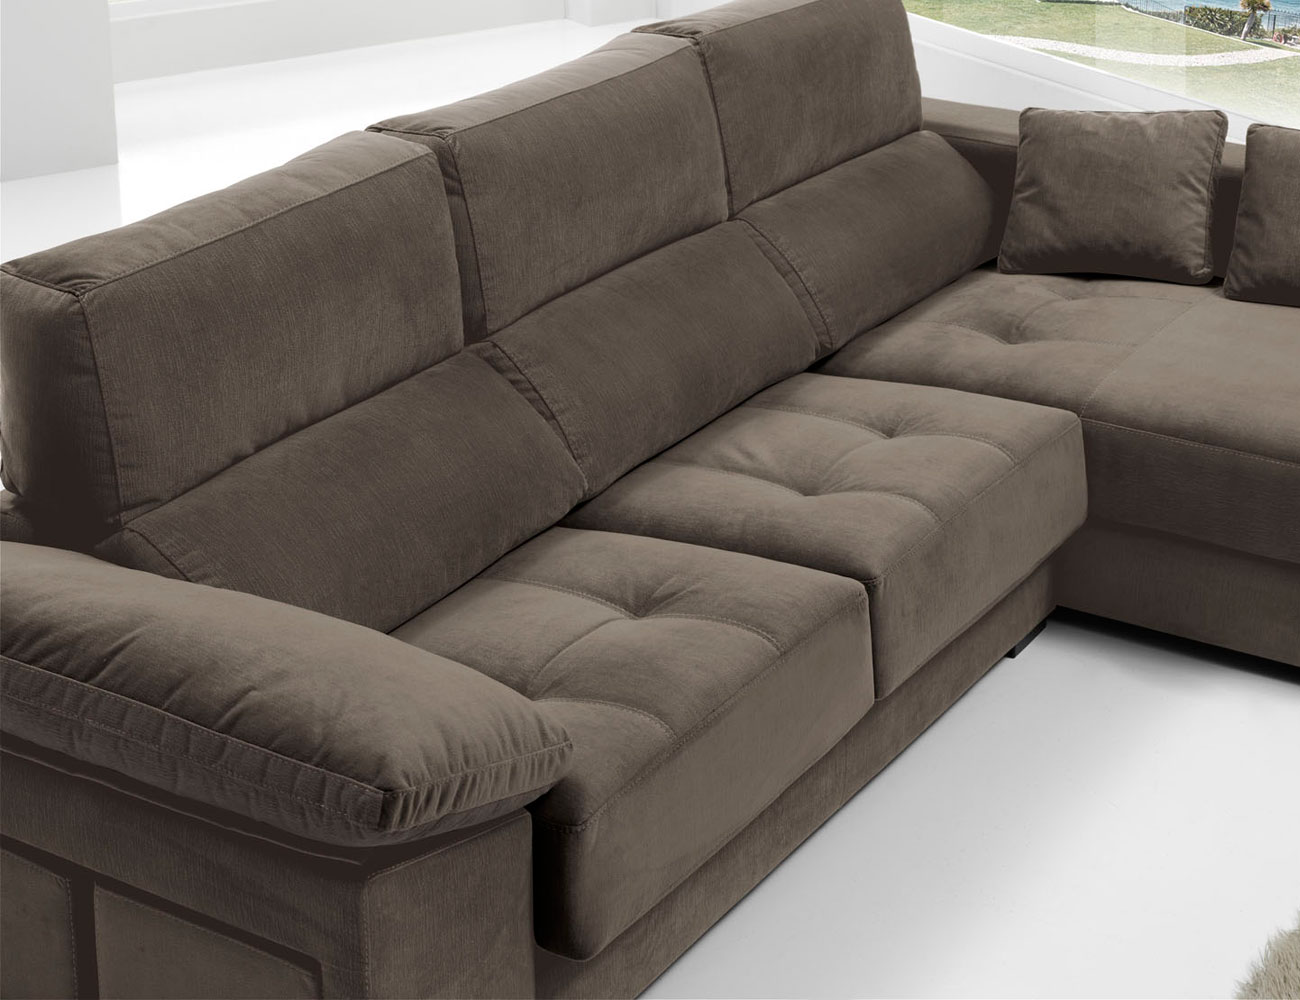 Sofa chaiselongue anti manchas bering pouf 228